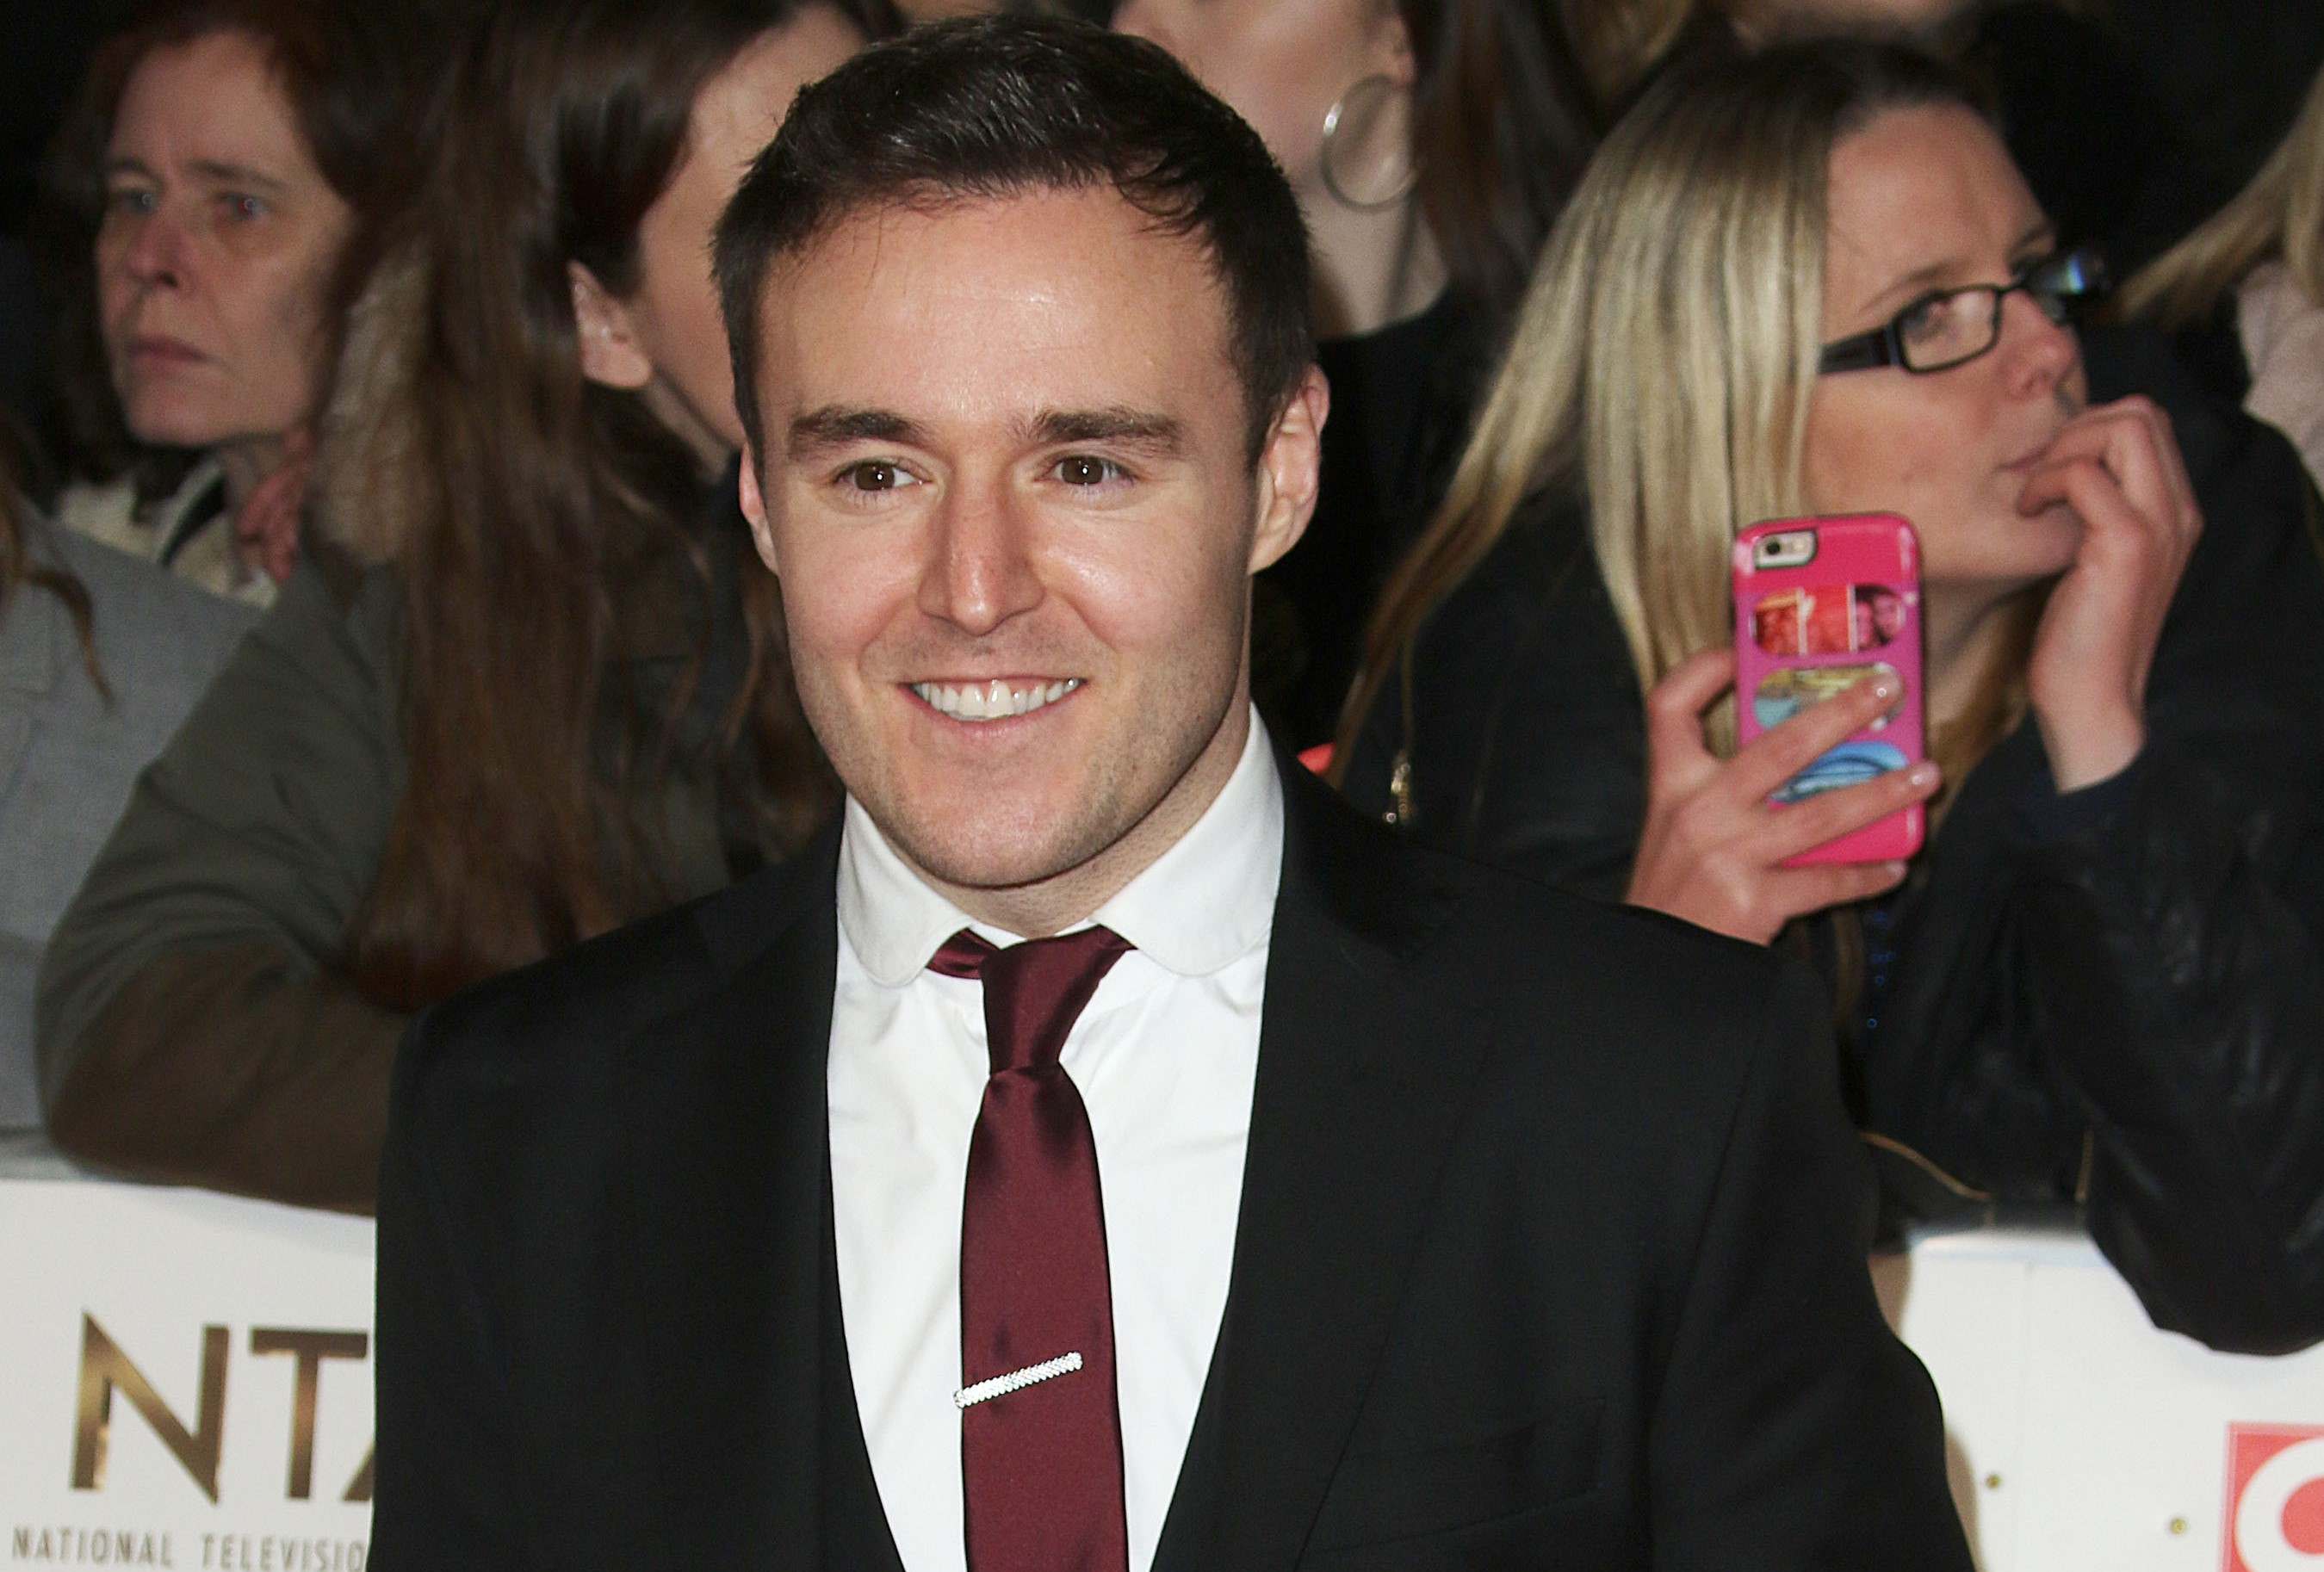 Corrie's Alan Halsall sparks romance rumours with former co-star Tisha Merry